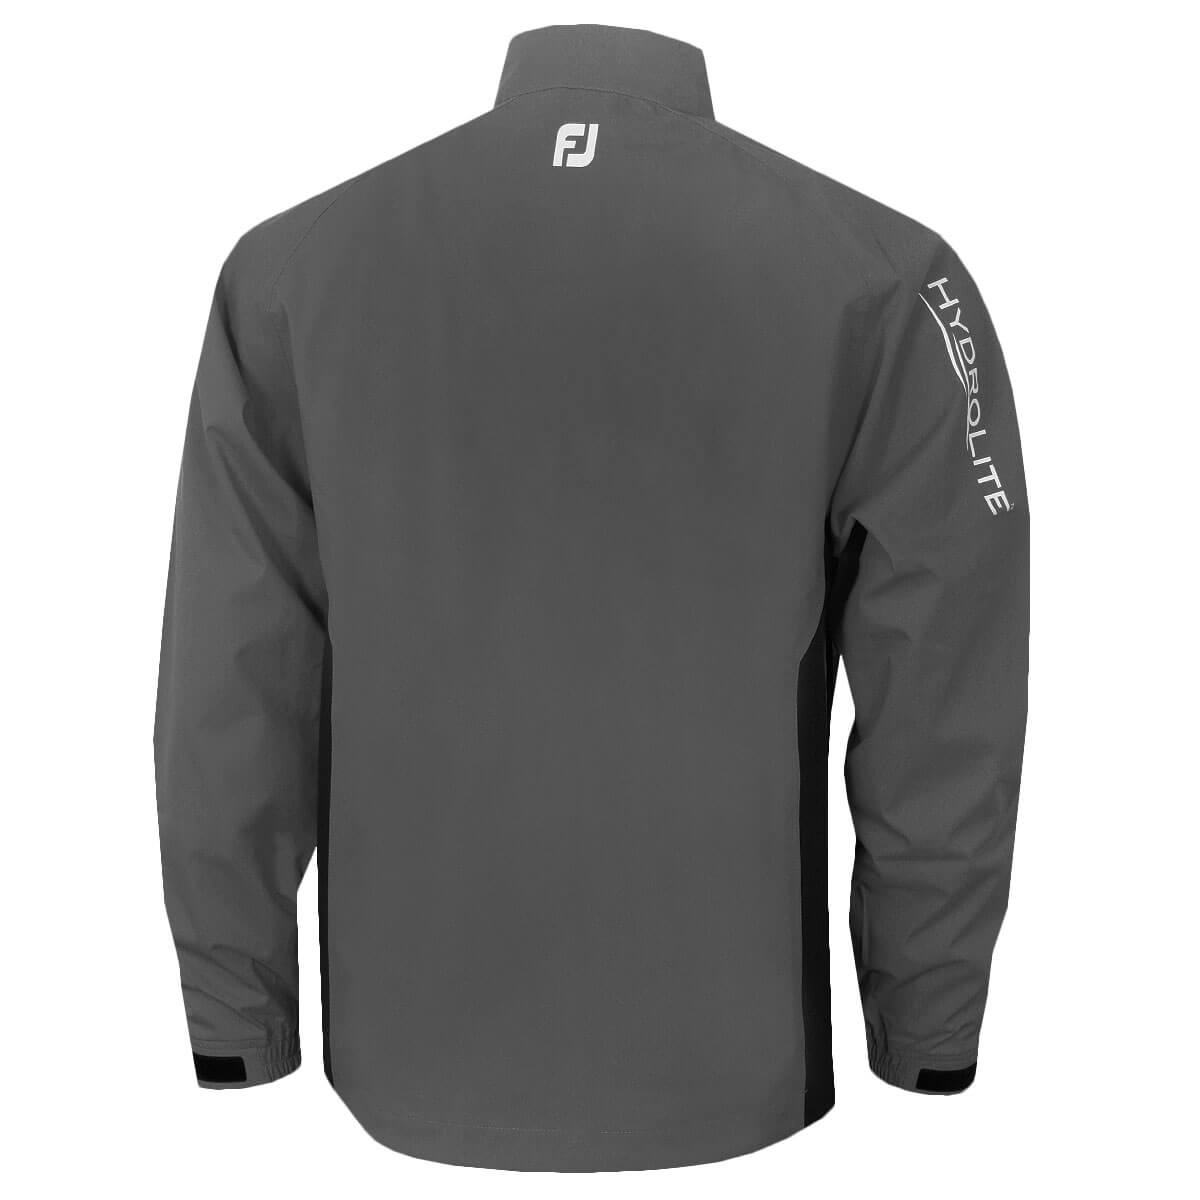 Footjoy-Mens-Hydrolite-Rain-Waterproof-Lightweight-FJ-Golf-Jacket-47-OFF-RRP thumbnail 3